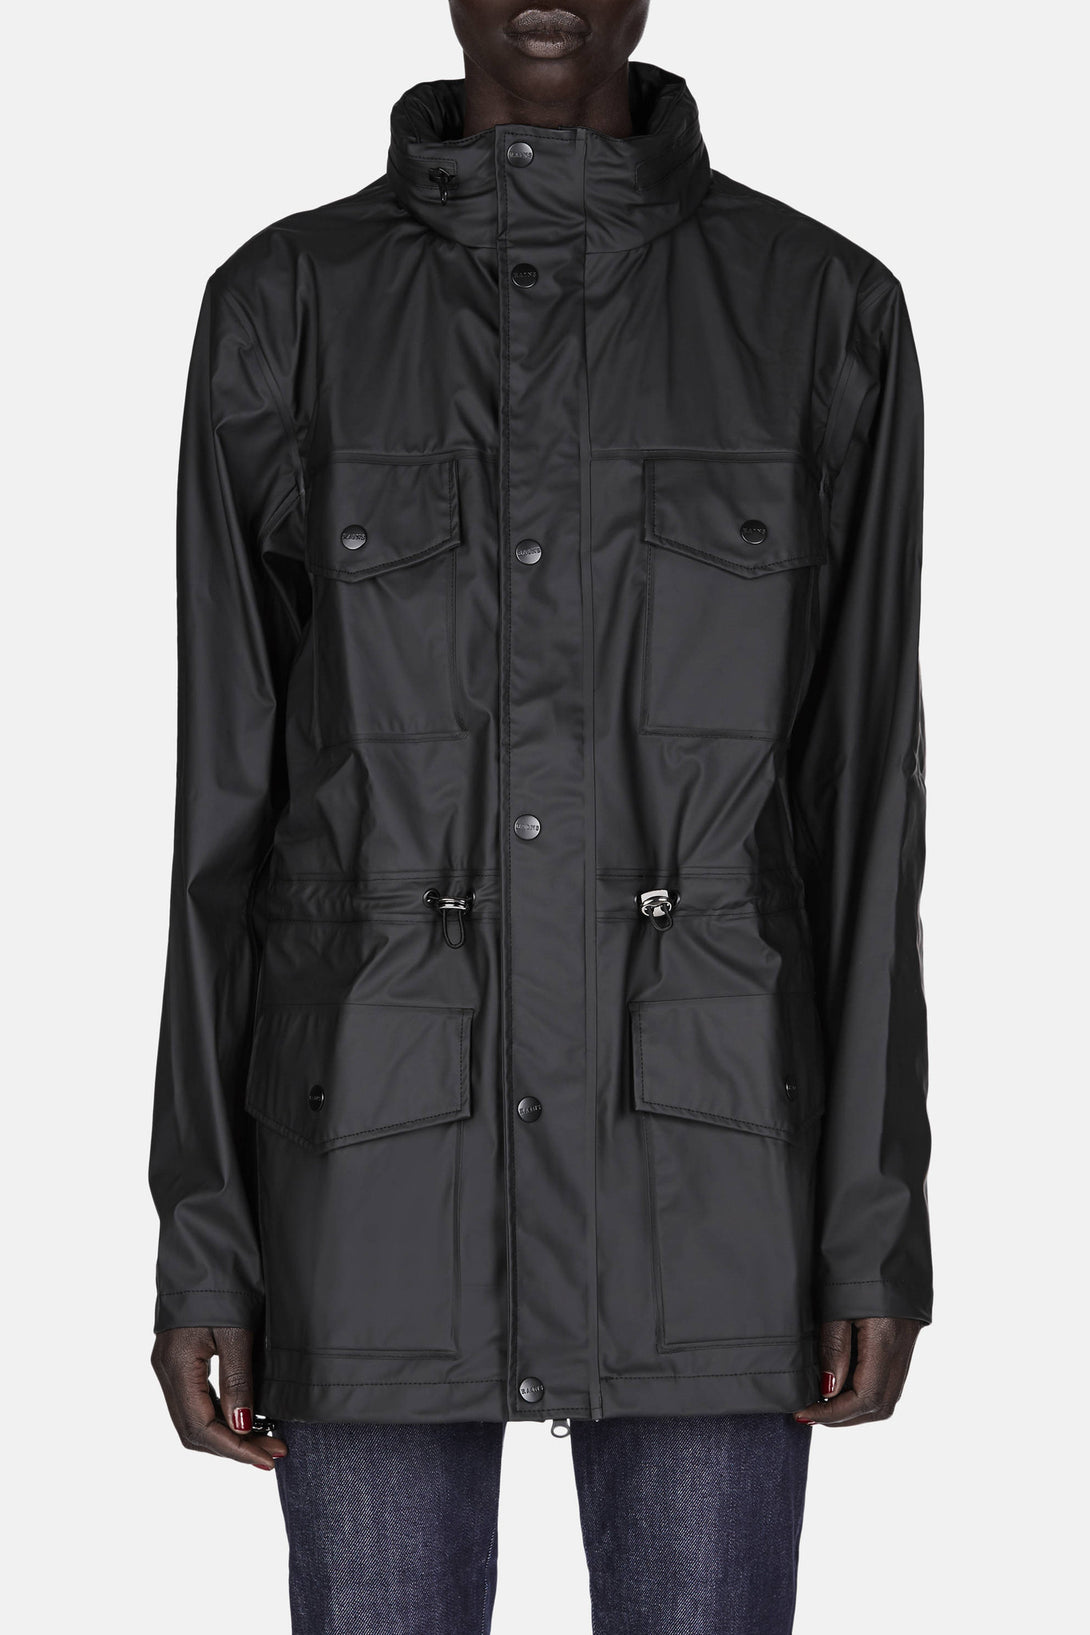 Four Pocket Raincoat - Black